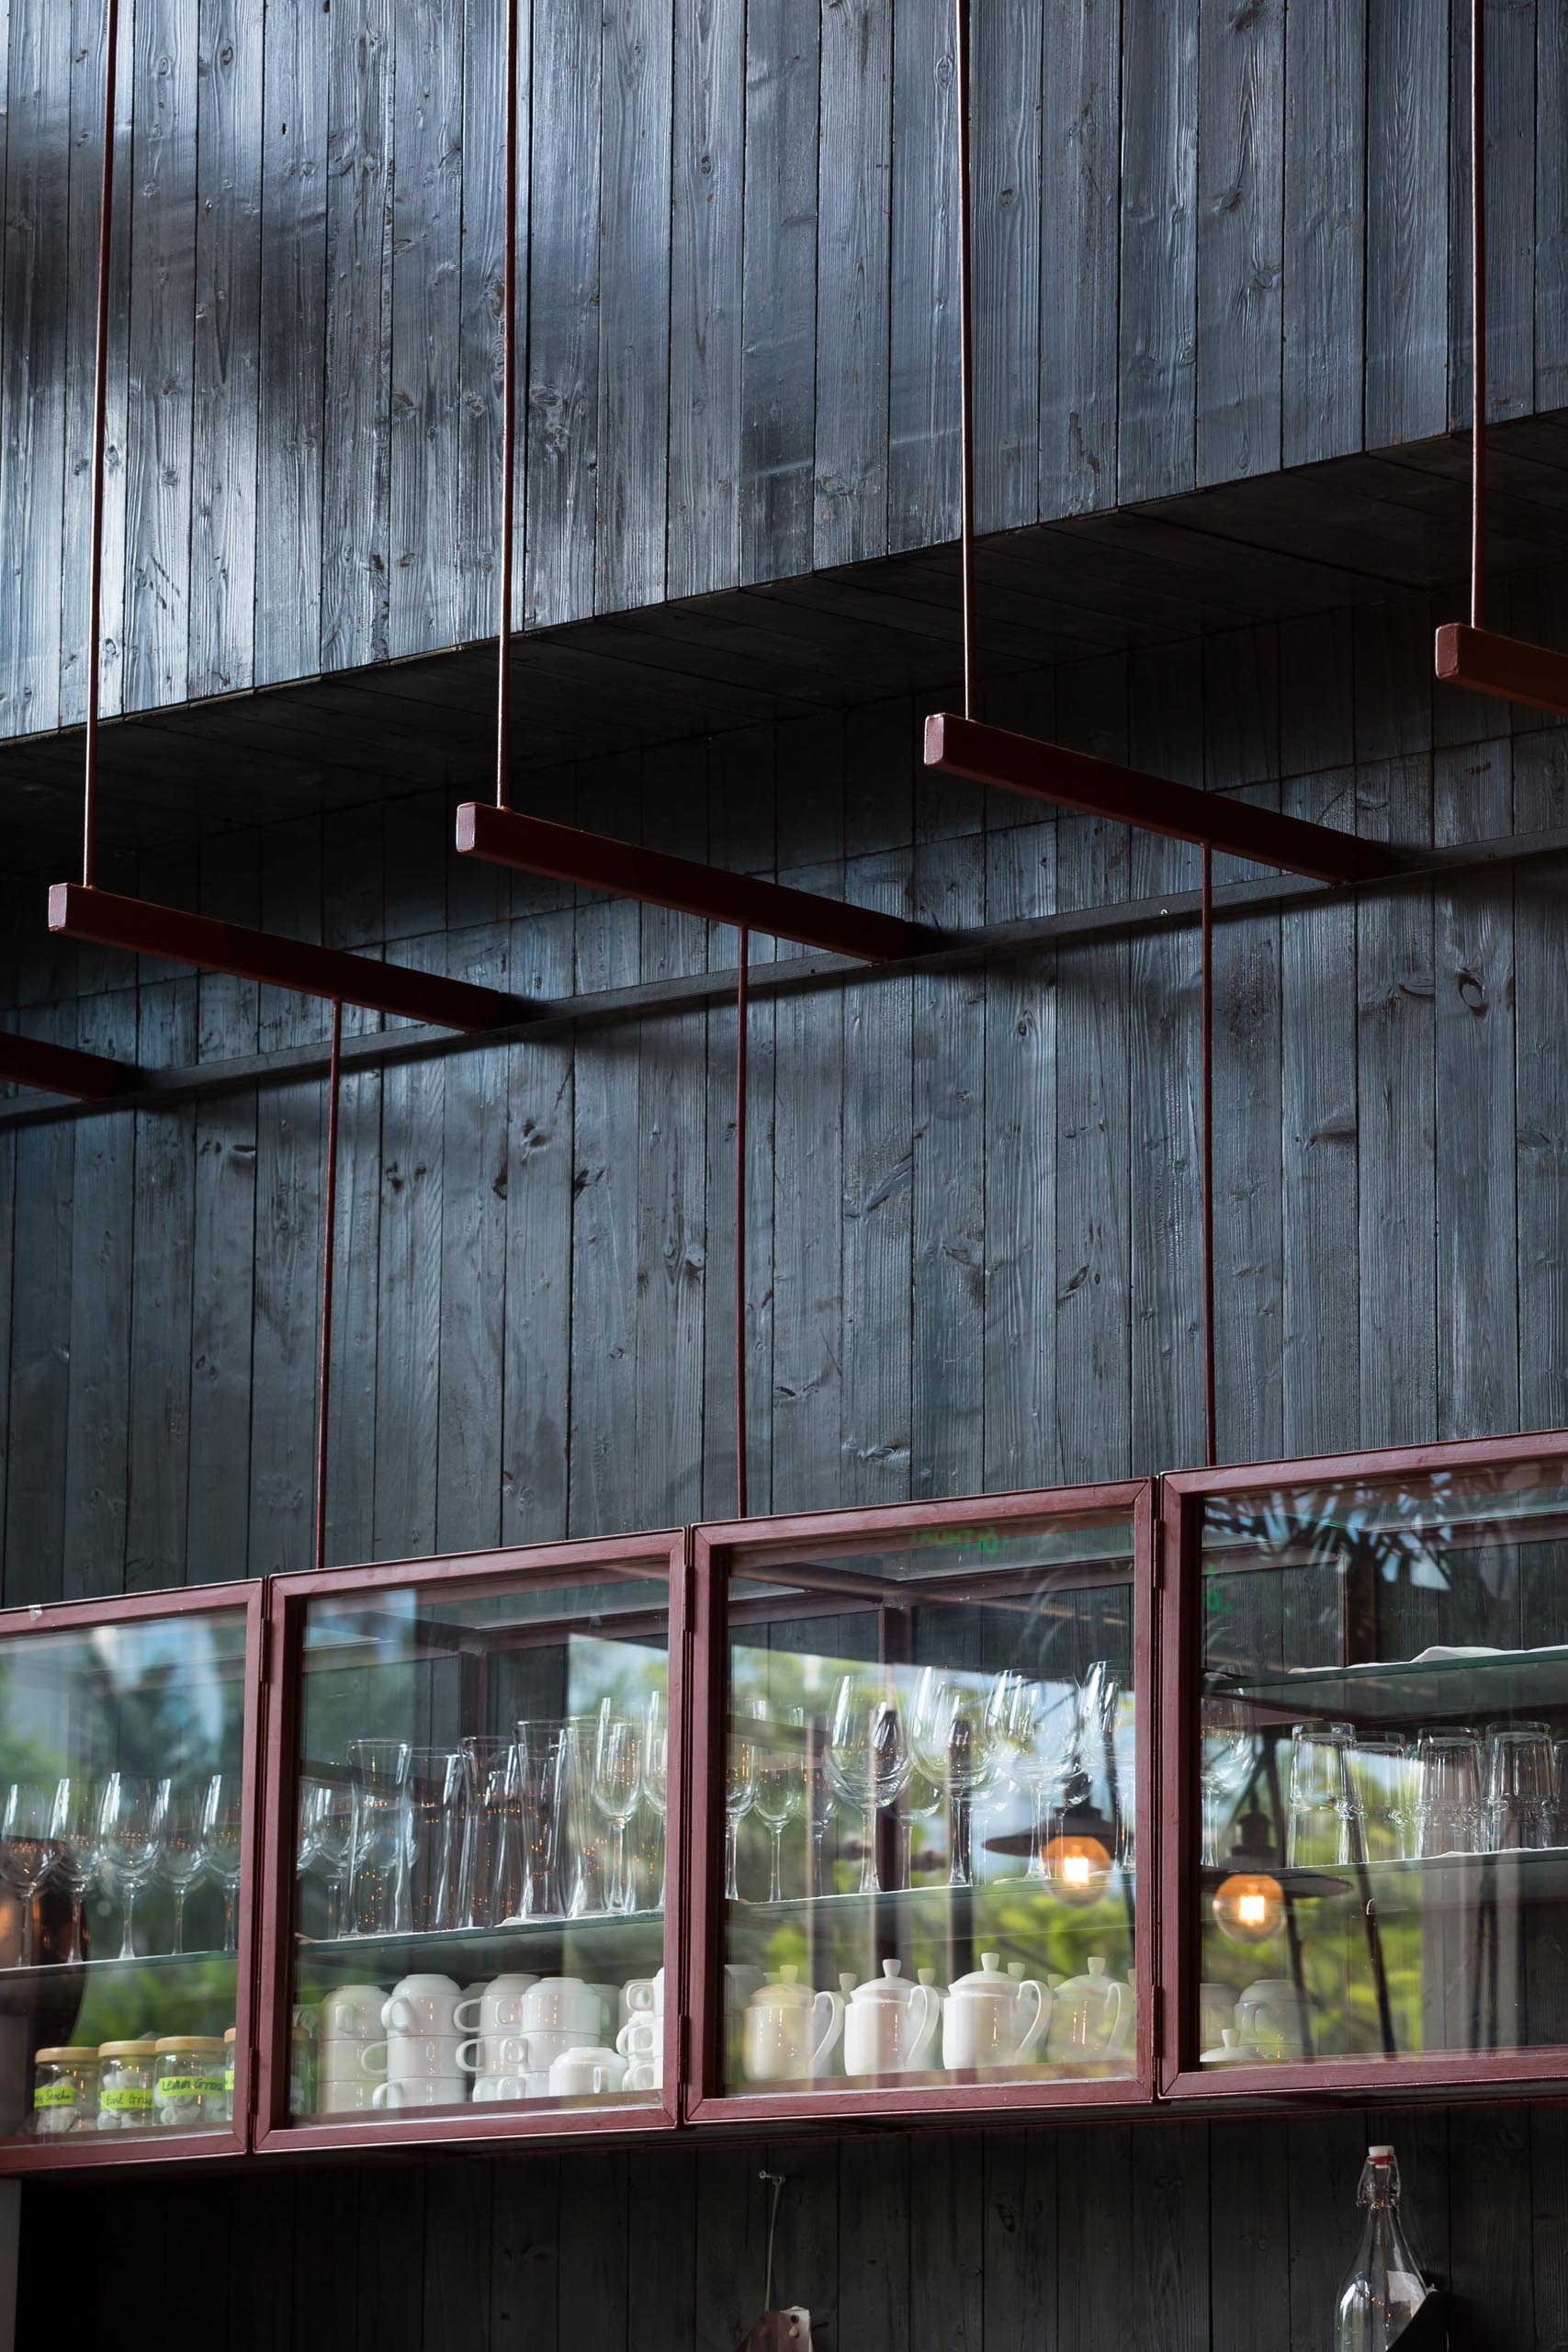 A modern restaurant with black wood walls and a glass display cabinet.